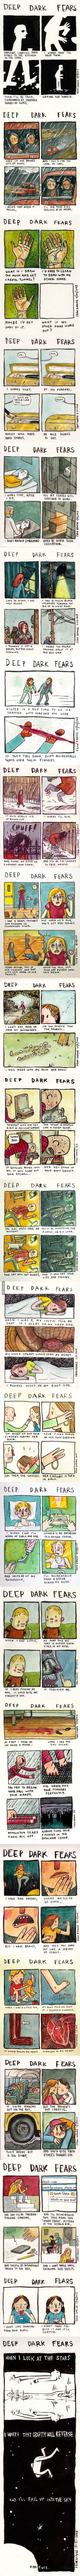 All the Deep Dark Fears Part (1 of 5). Woah, some of these are very messed up.